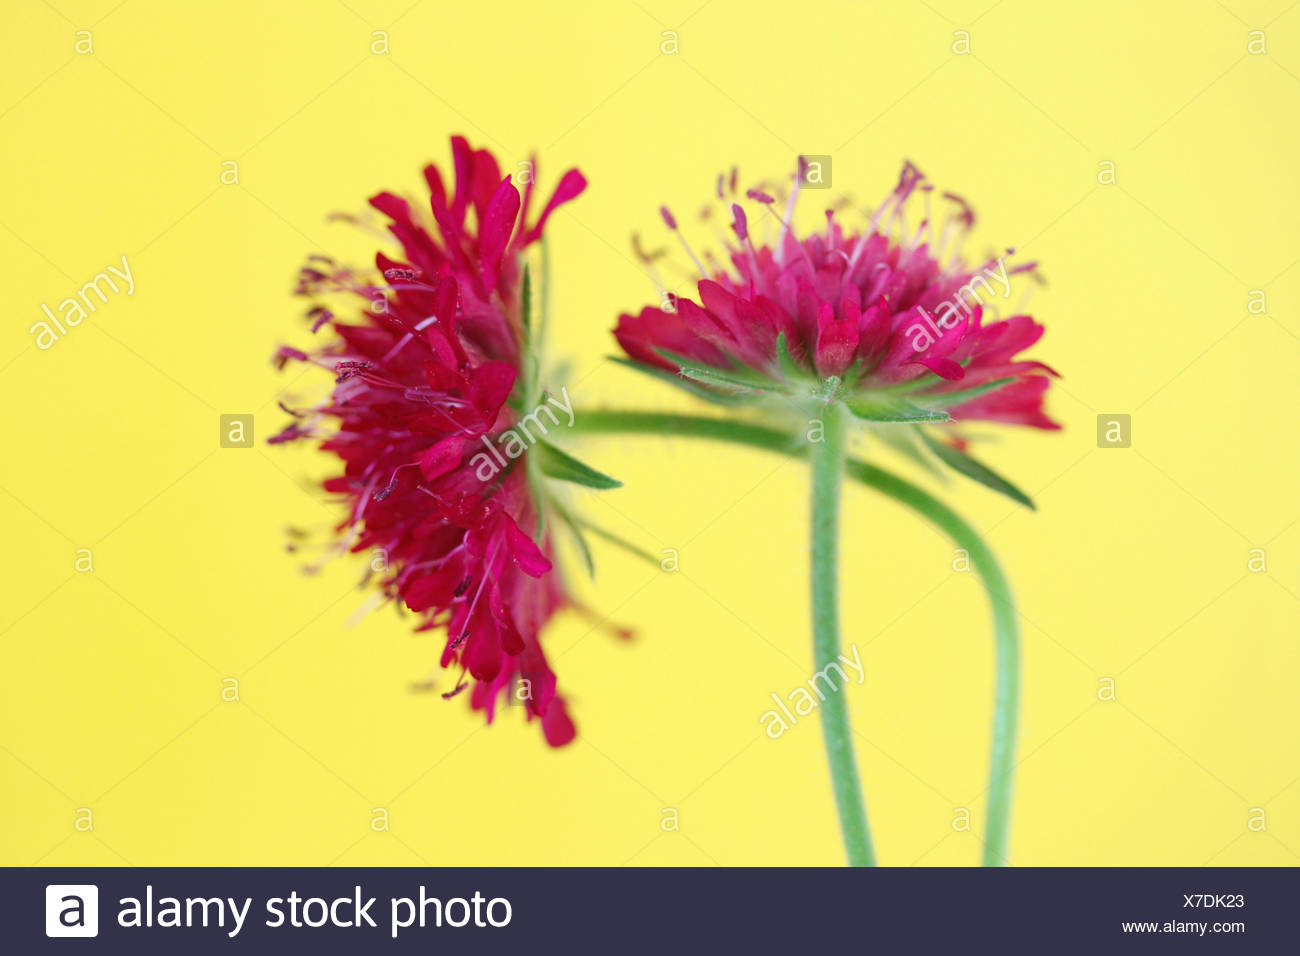 Two Field Scabiouses or Gipsy Roses (Knautia arvensis) - Stock Image